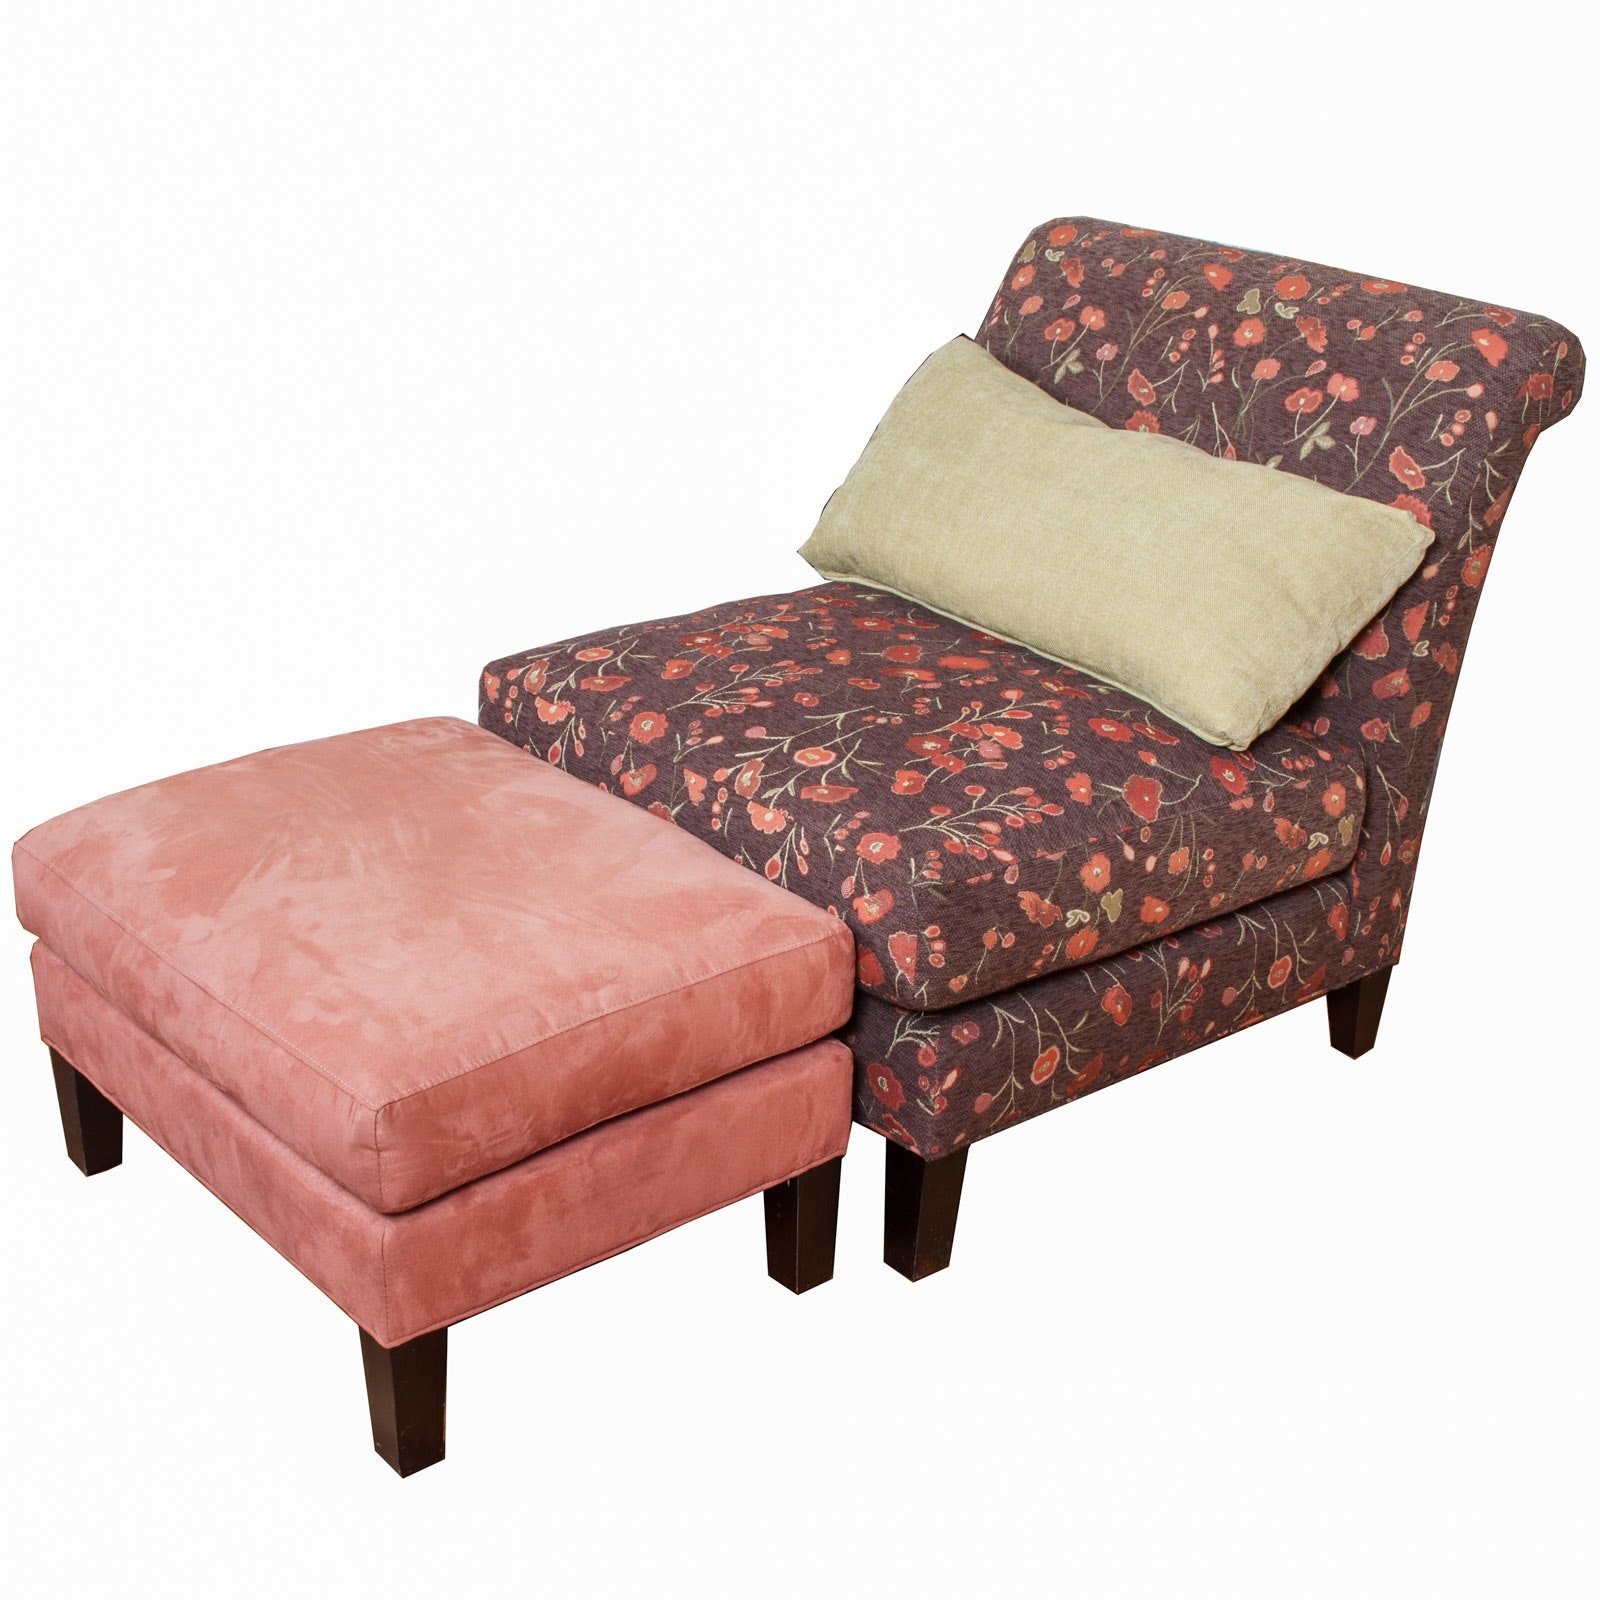 Floral Chair with Ottoman by Arhaus Furniture